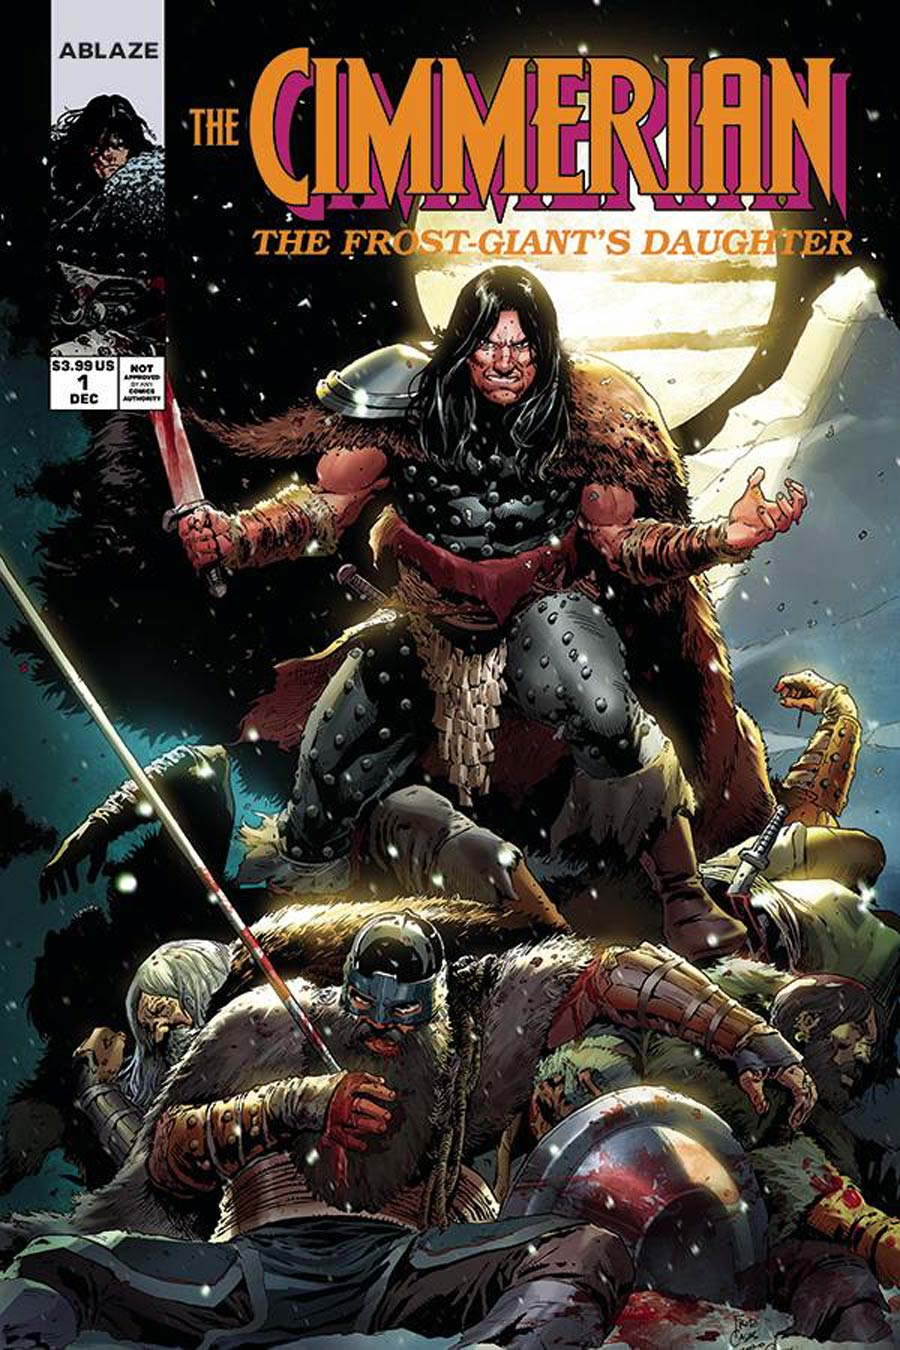 Cimmerian Frost-Giants Daughter #1 Cover E Variant Fritz Casas Wolverine 1 Parody Cover